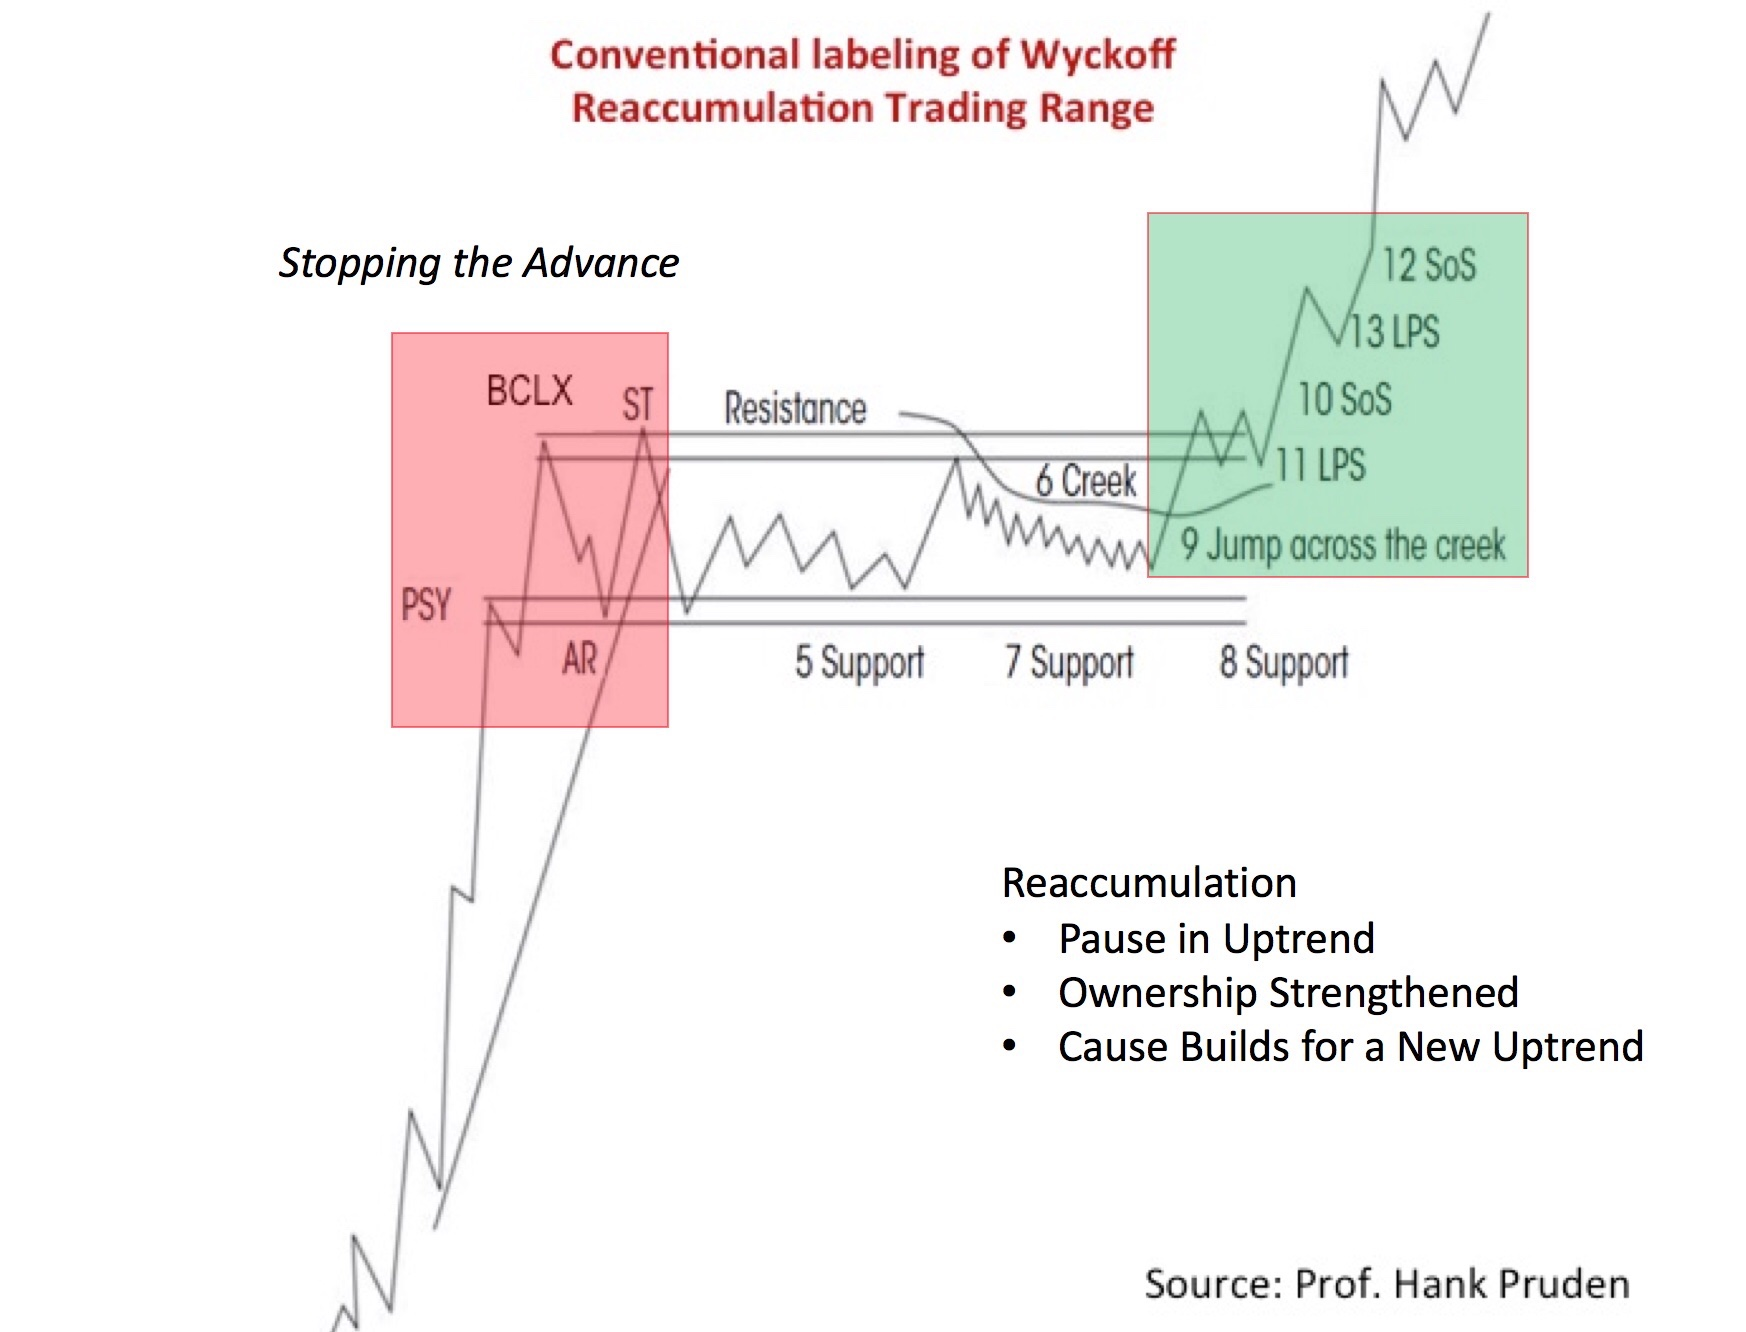 Wyckoff Schemactic - Great for Small Account Strategy